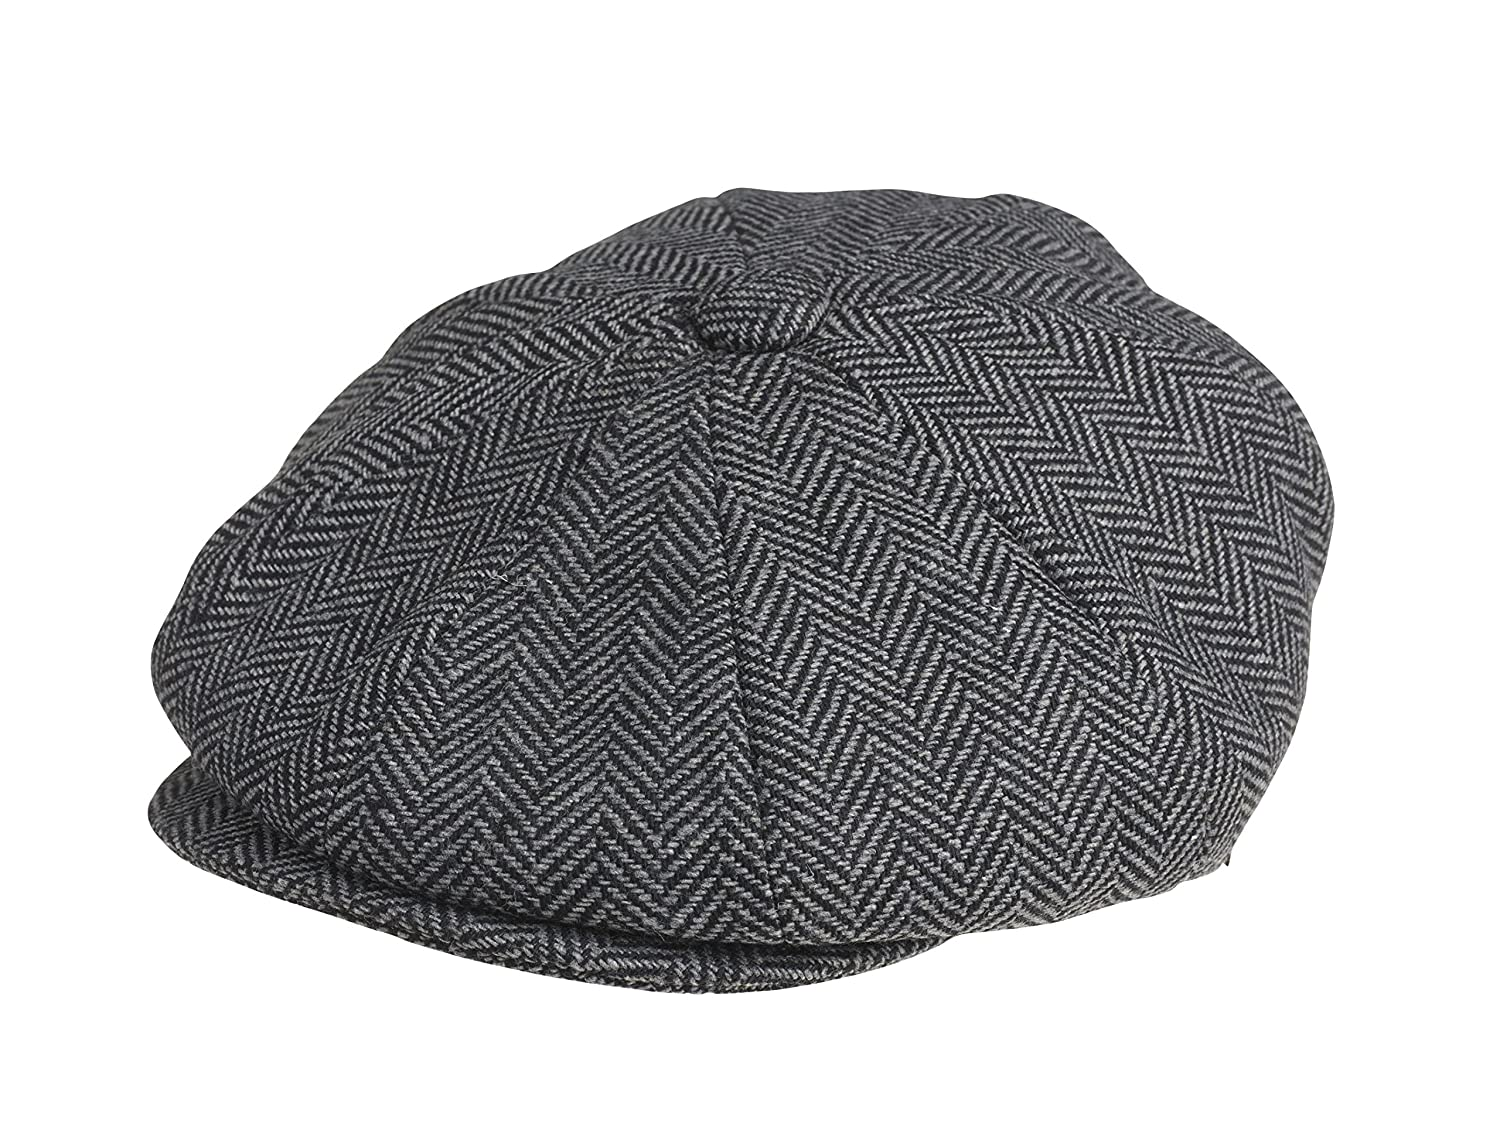 ... cheapest peaky blinders mens 8 piece newsboy style flat cap wool x  large 61 cm grey ... 1848bf61274d